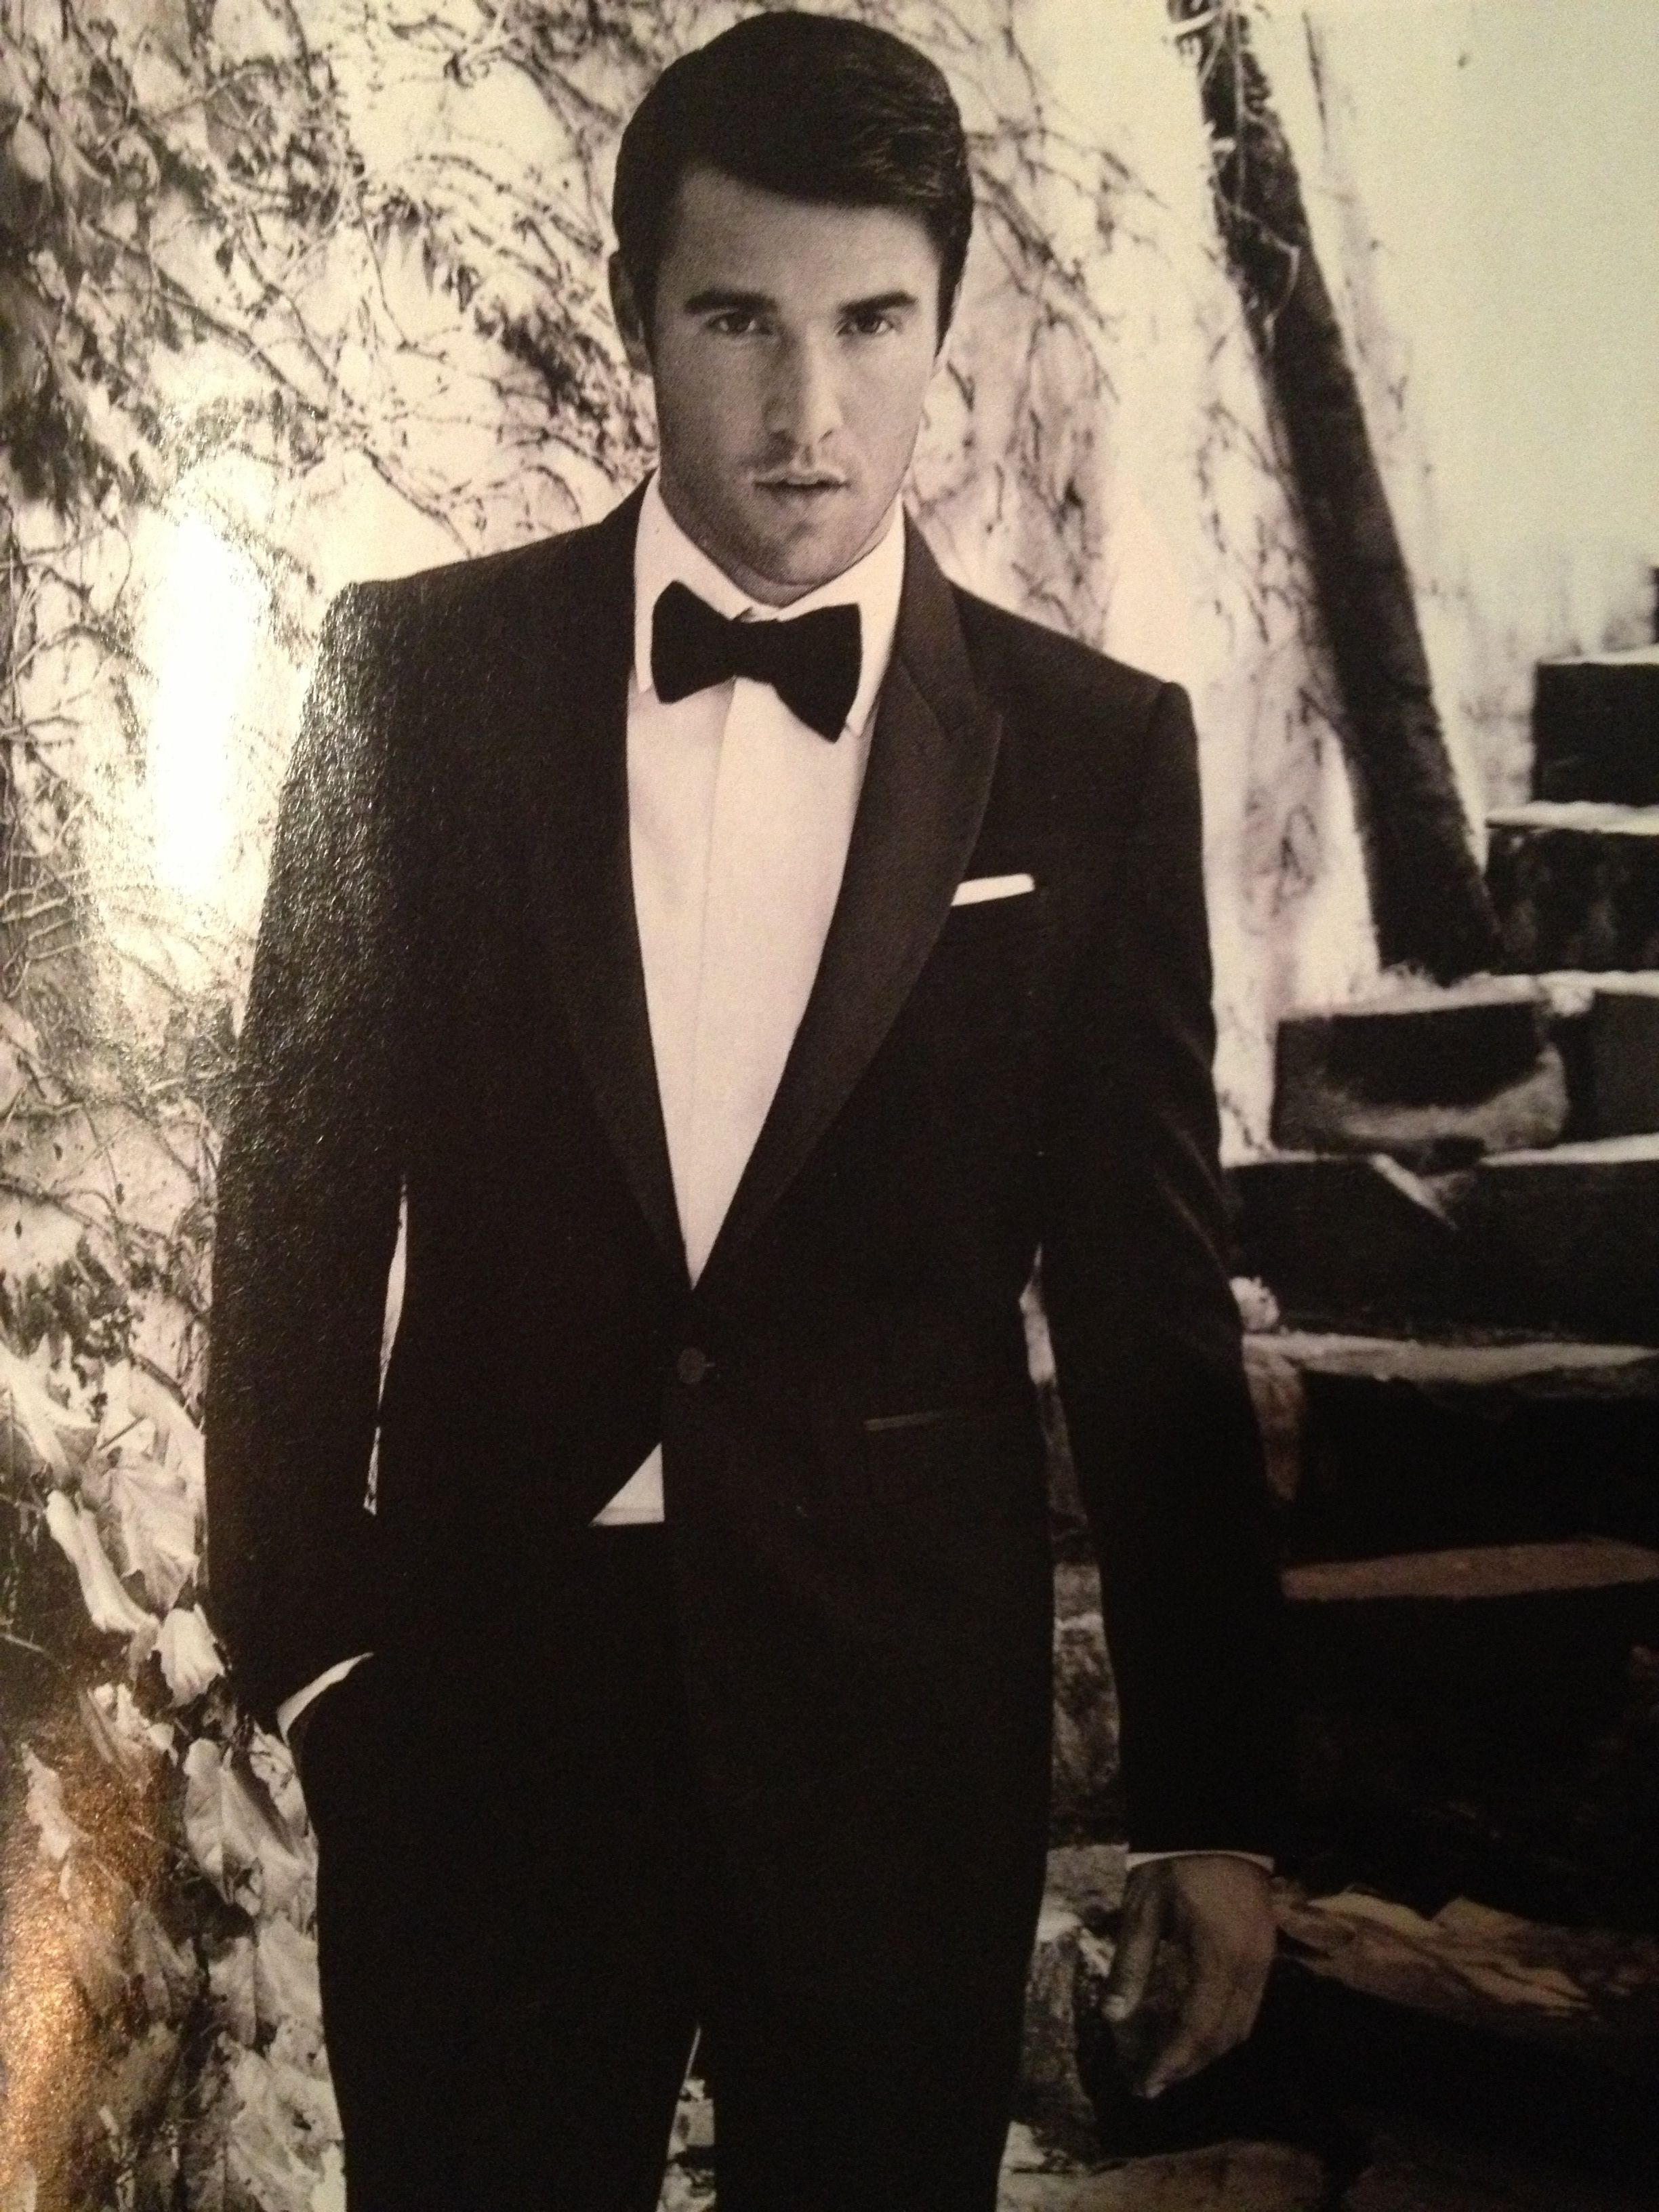 images Josh Bowman (born 1988)